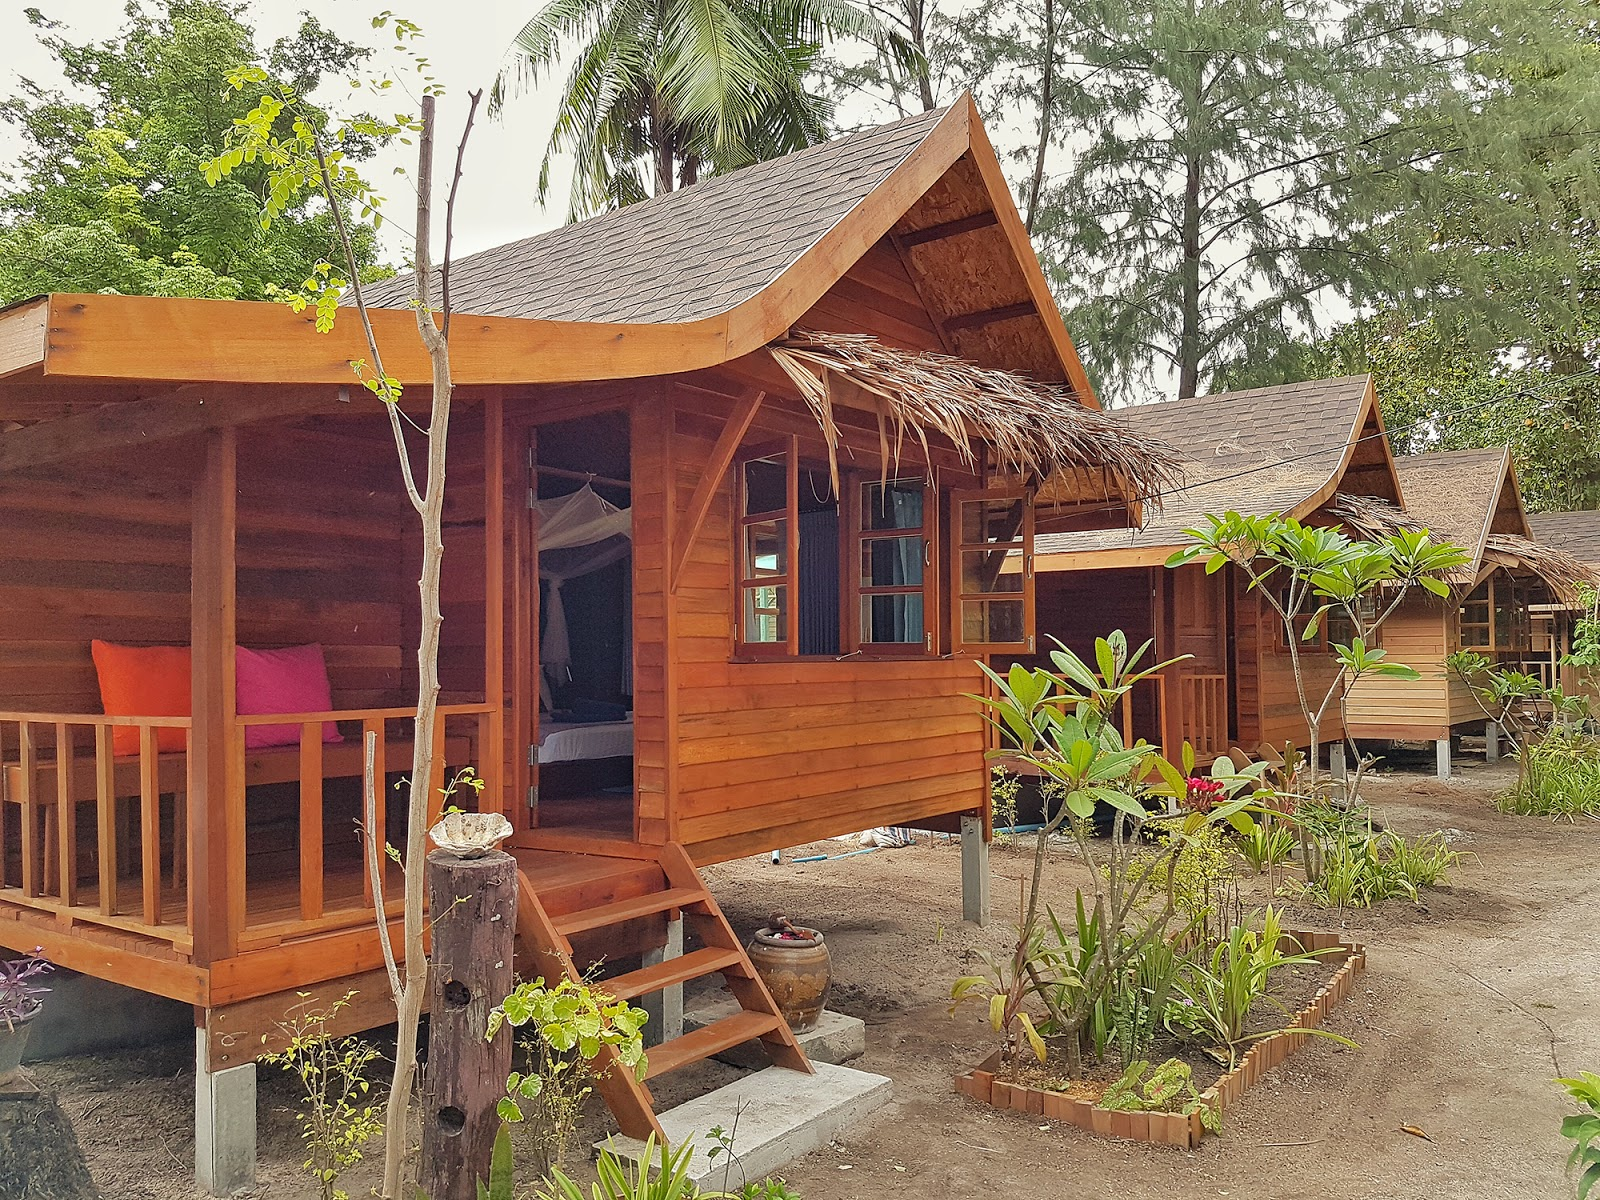 Bamboo garden rooms at lipe beach resort koh lipe - Compared To The Bamboo Garden Rooms The Built And Finishing Is Far More Superior And Comfortable Quite The Sturdy Setup With A Little Porch Outside For